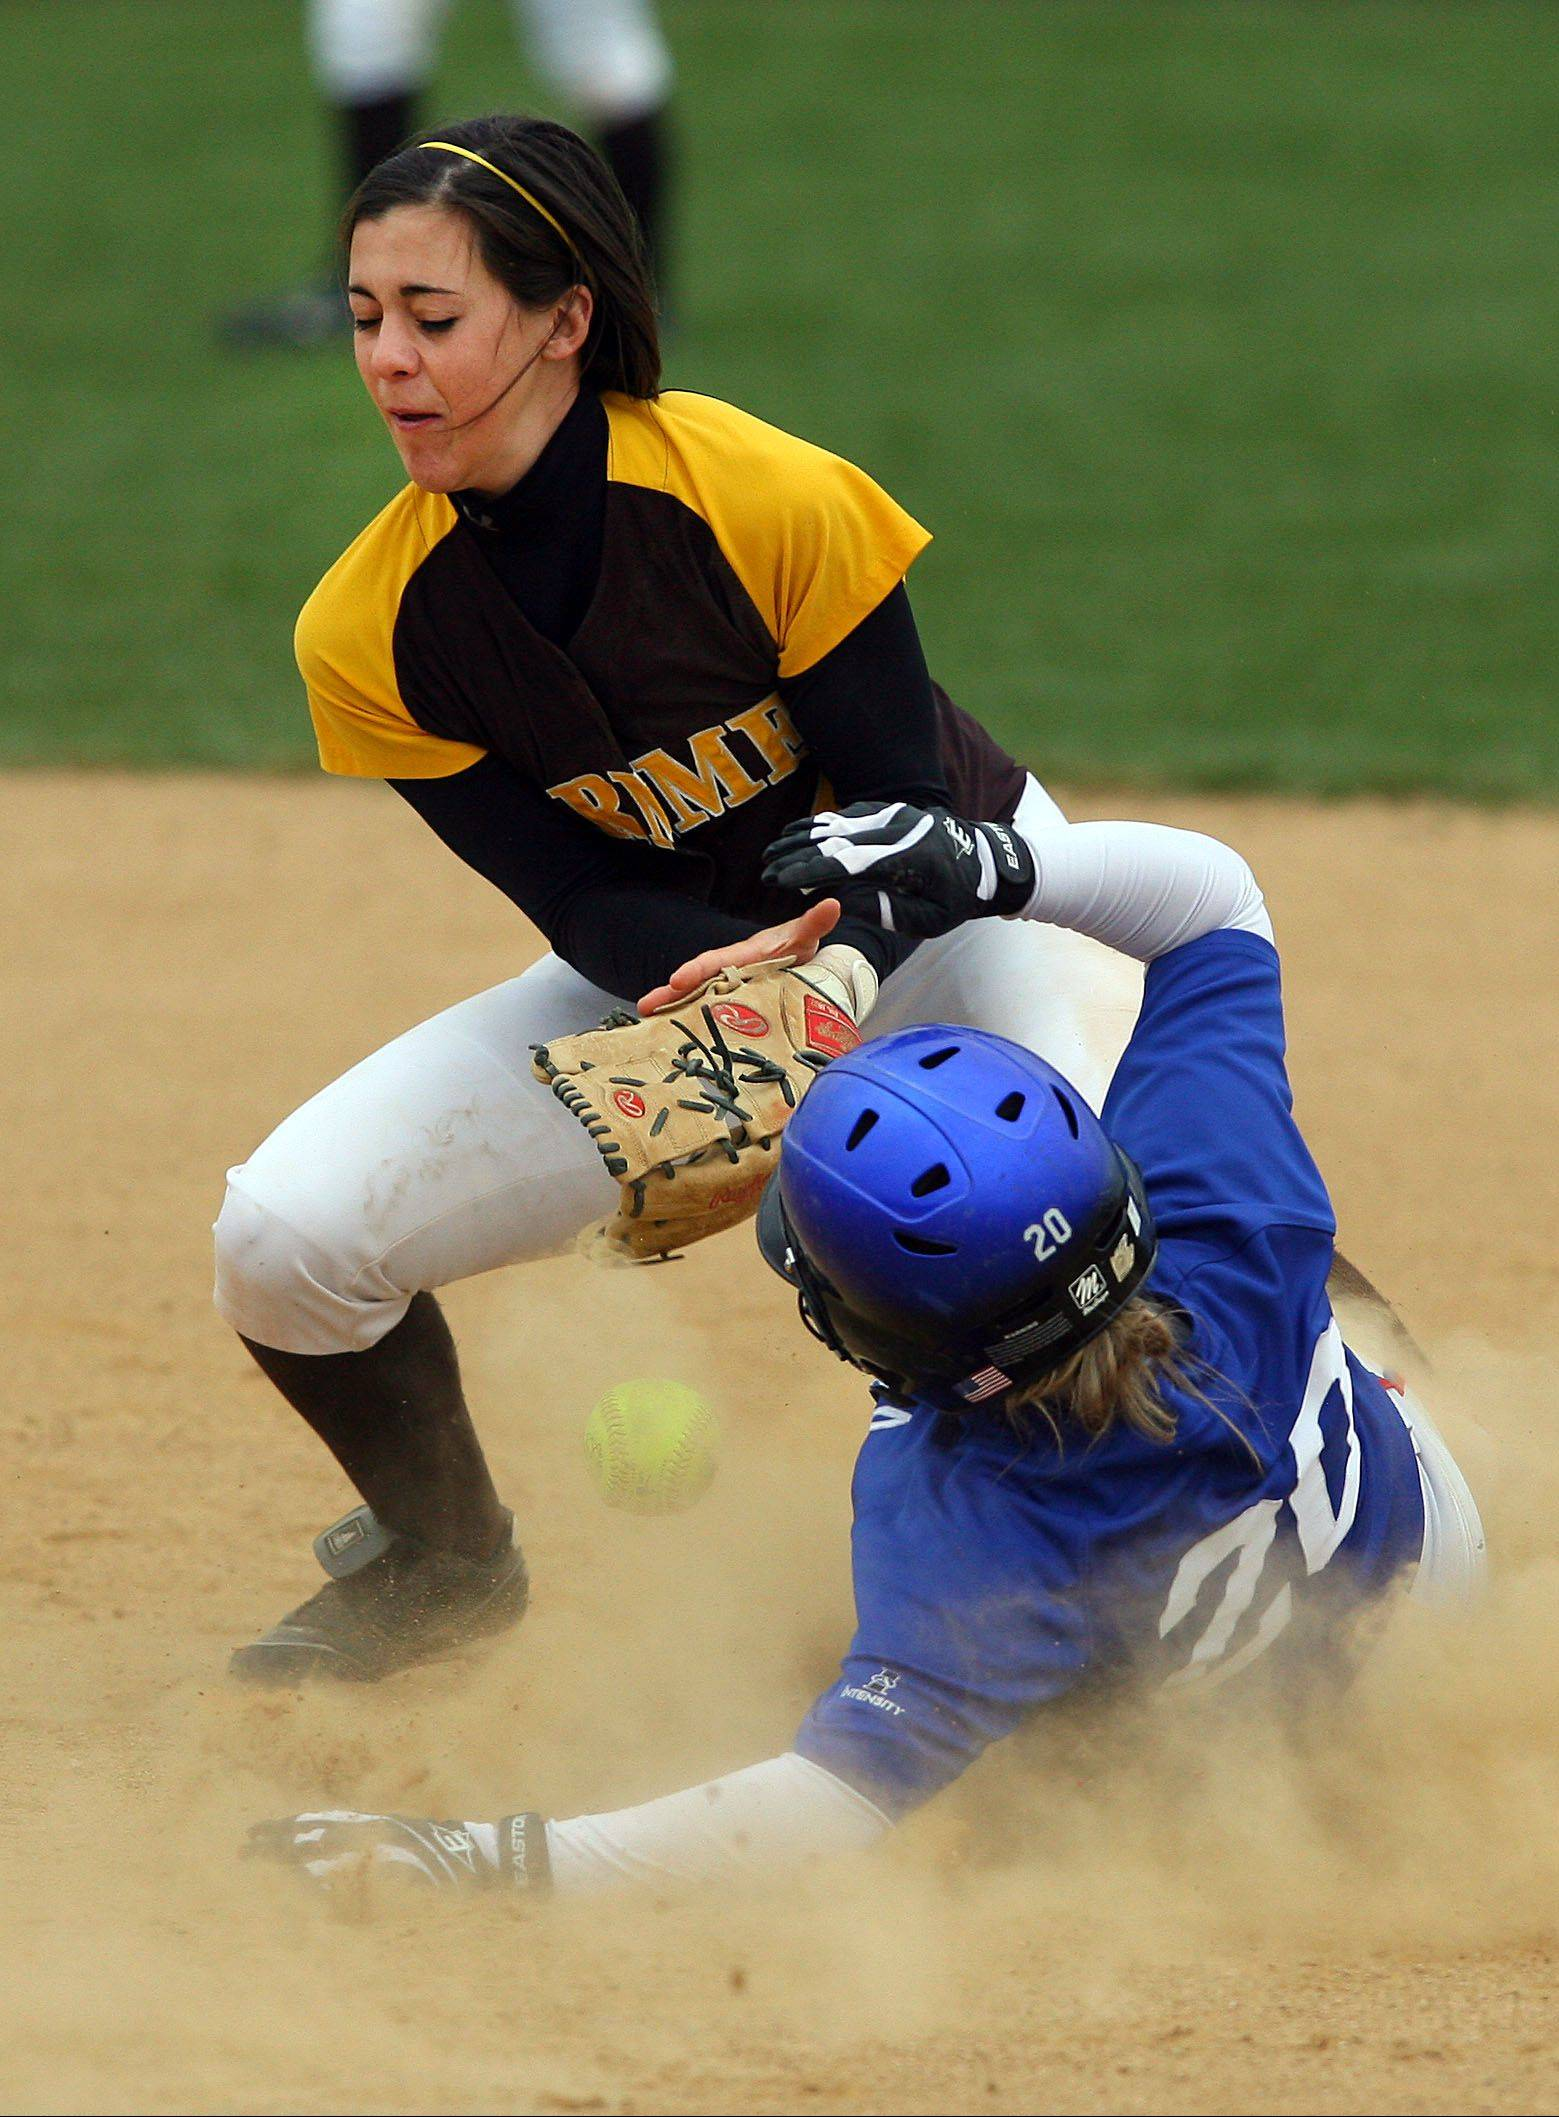 Carmel's Kathleen Felicelli tries to make the play as Lakes' Megan Milewski slides into second base last season in Mundelein.